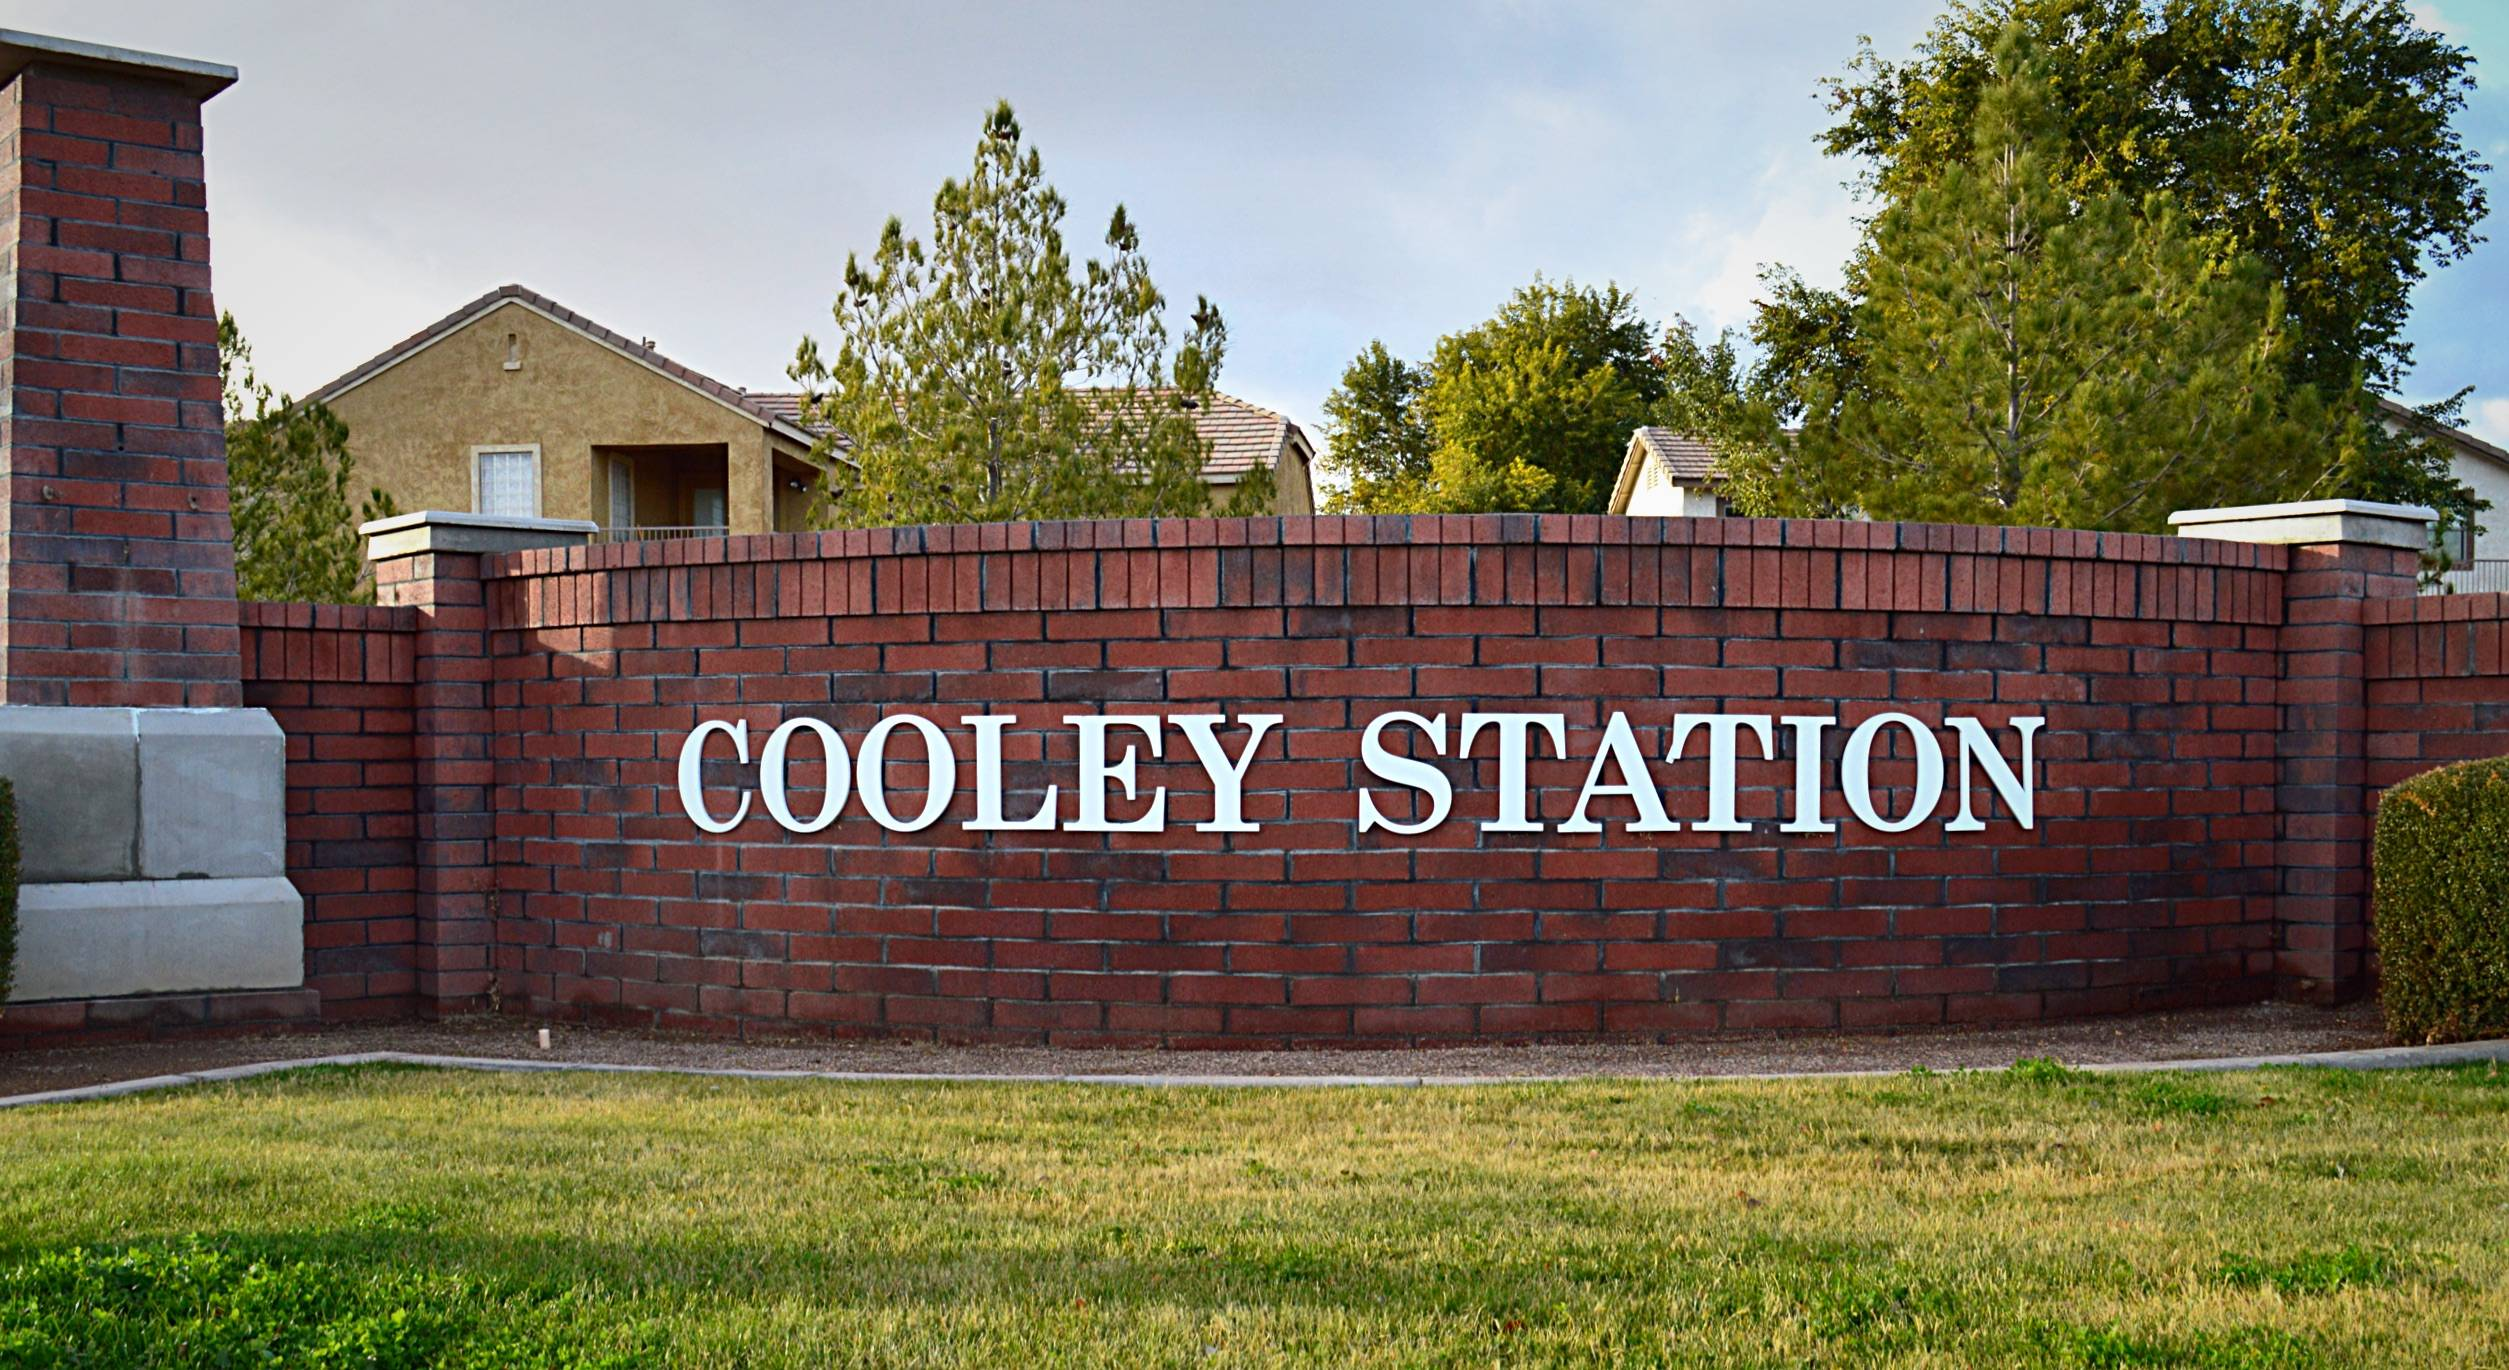 new home builders in gilbert az vinson station is highly sought after community situated in gilbert arizona while consistent residential and business growth has pushed new home builders cooley homes for sale az 85295